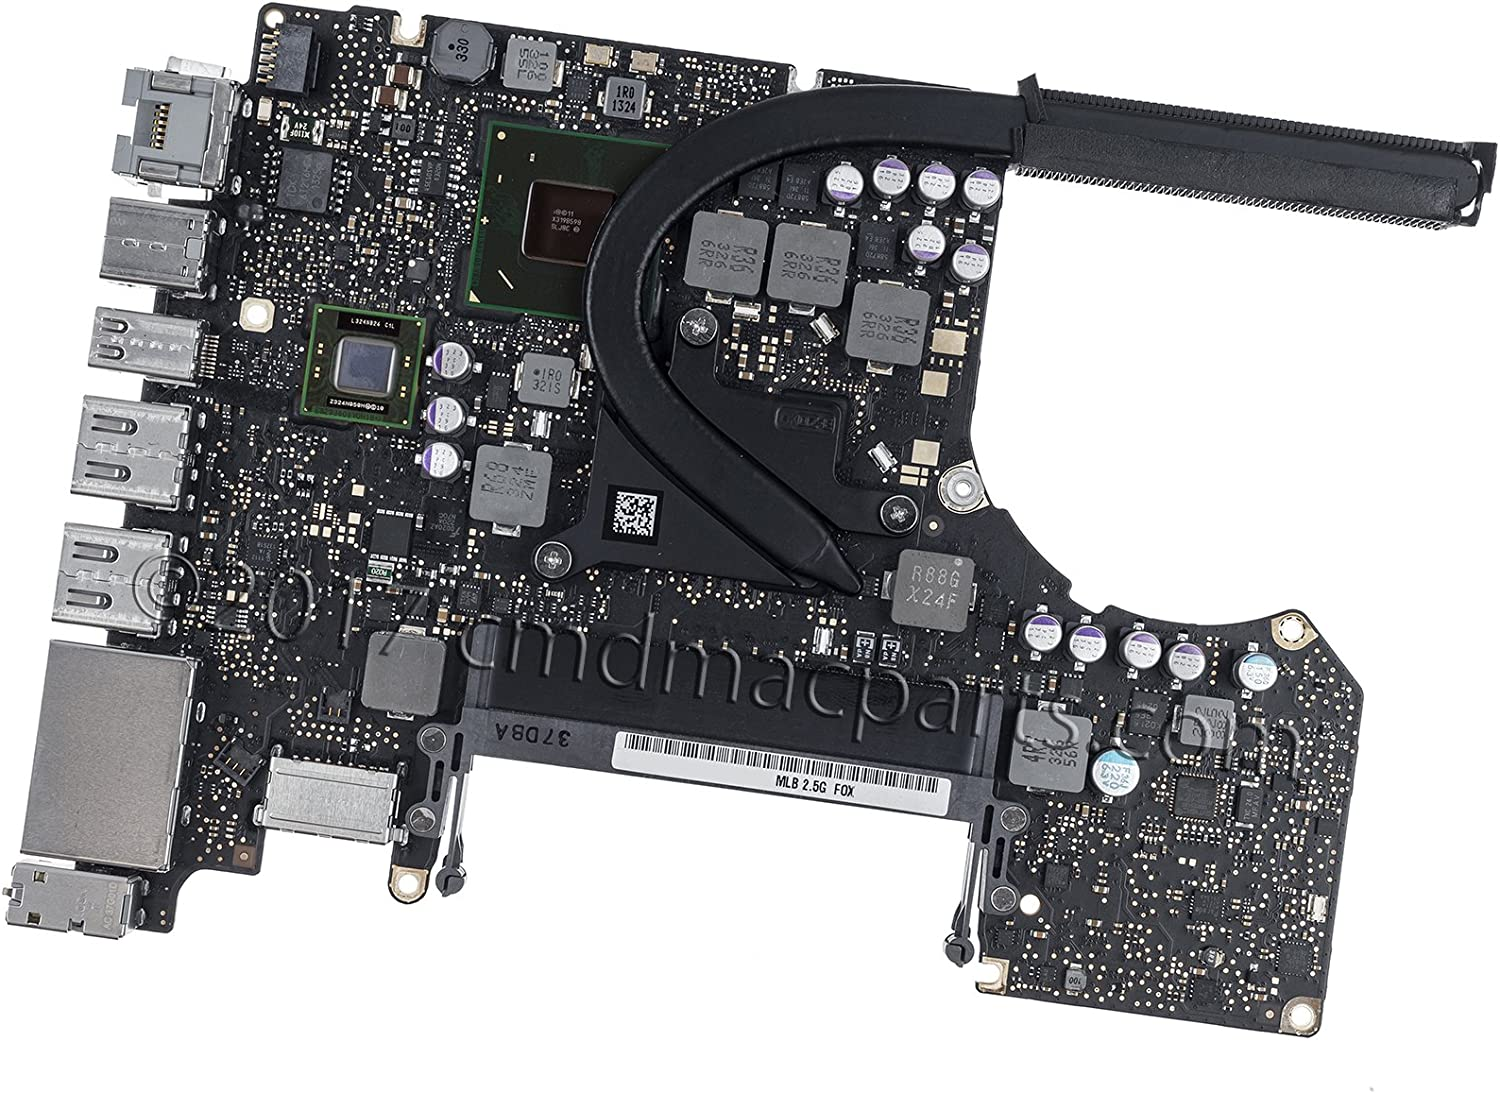 "Odyson - Logic Board 2.5GHz Core i5 (i5-3210M) Replacement for MacBook Pro 13"" Unibody A1278 (Mid 2012)"